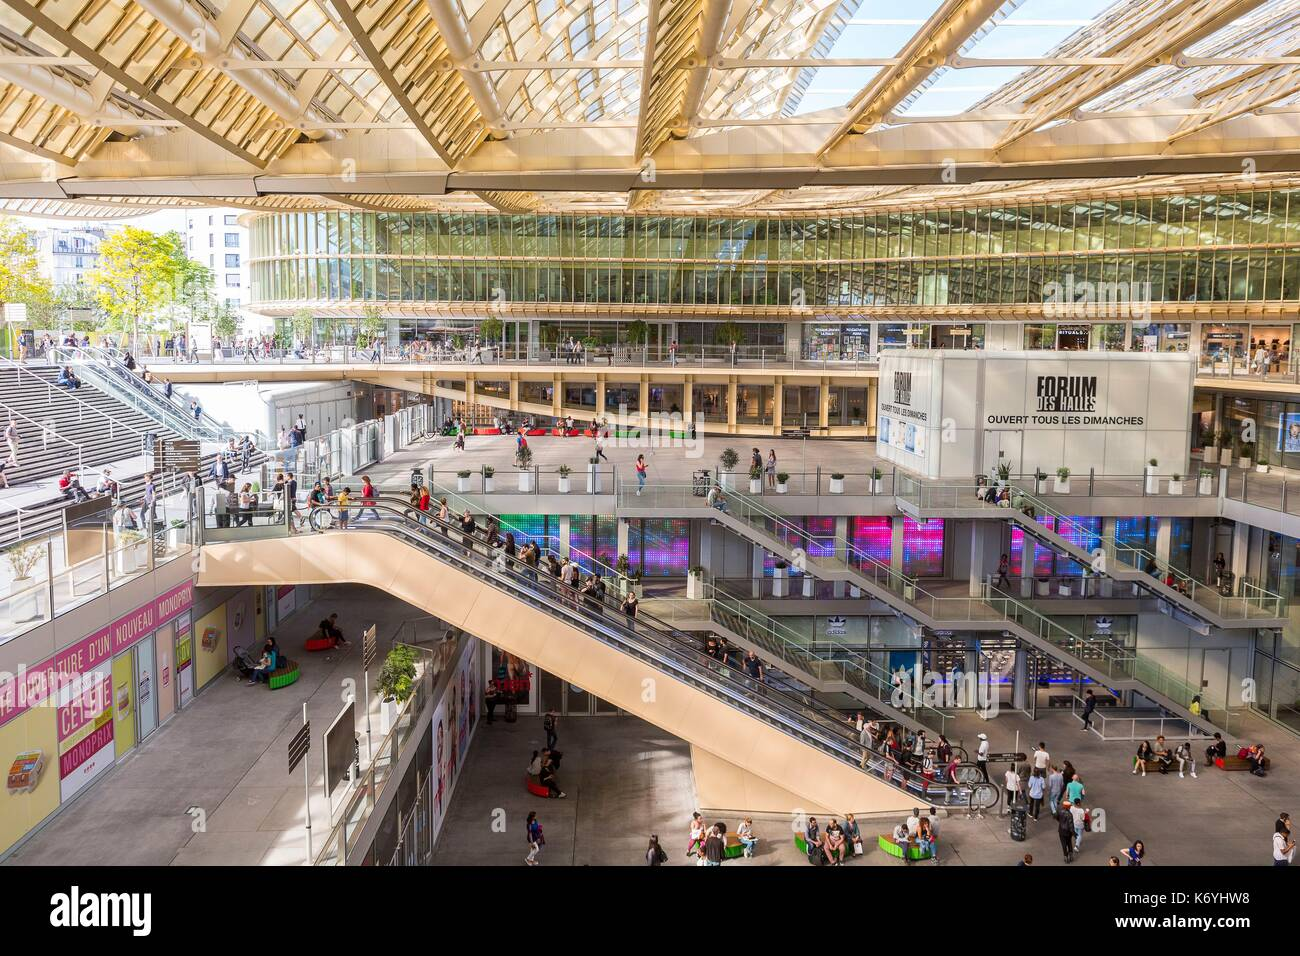 france paris the canopy of the forum des halles made of glass and stock photo 159187988 alamy. Black Bedroom Furniture Sets. Home Design Ideas